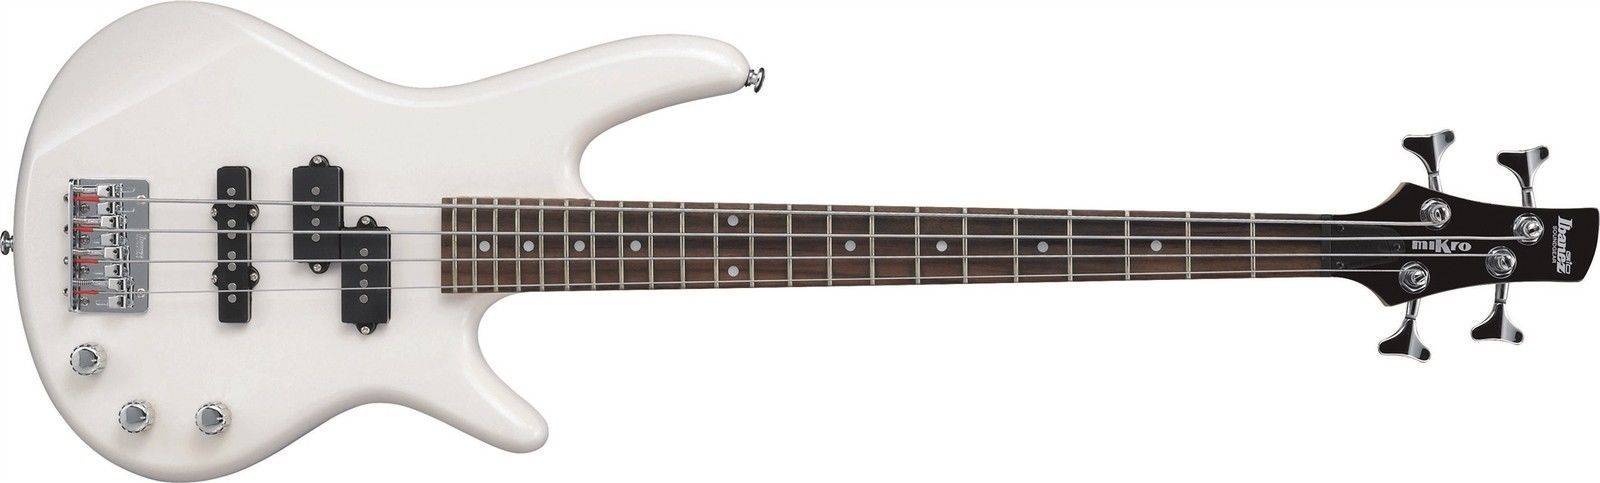 Ibanez GSRM20PW miKro Compact Student Beginner Electric Bass Guitar with Gig Bag